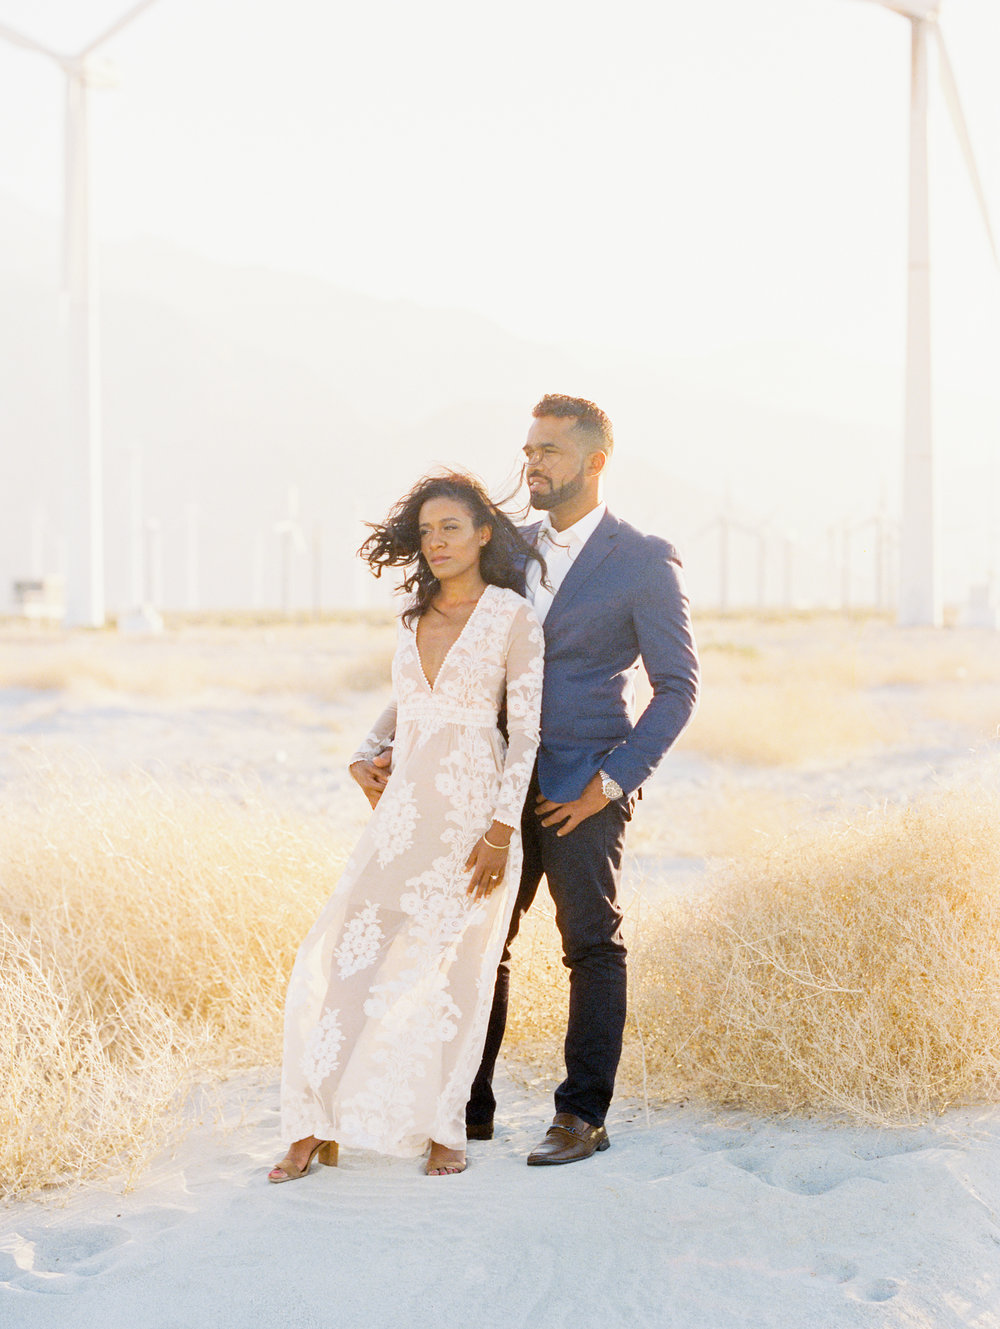 dennisroycoronel_essencecharles_palmsprings_engagement-46.jpg